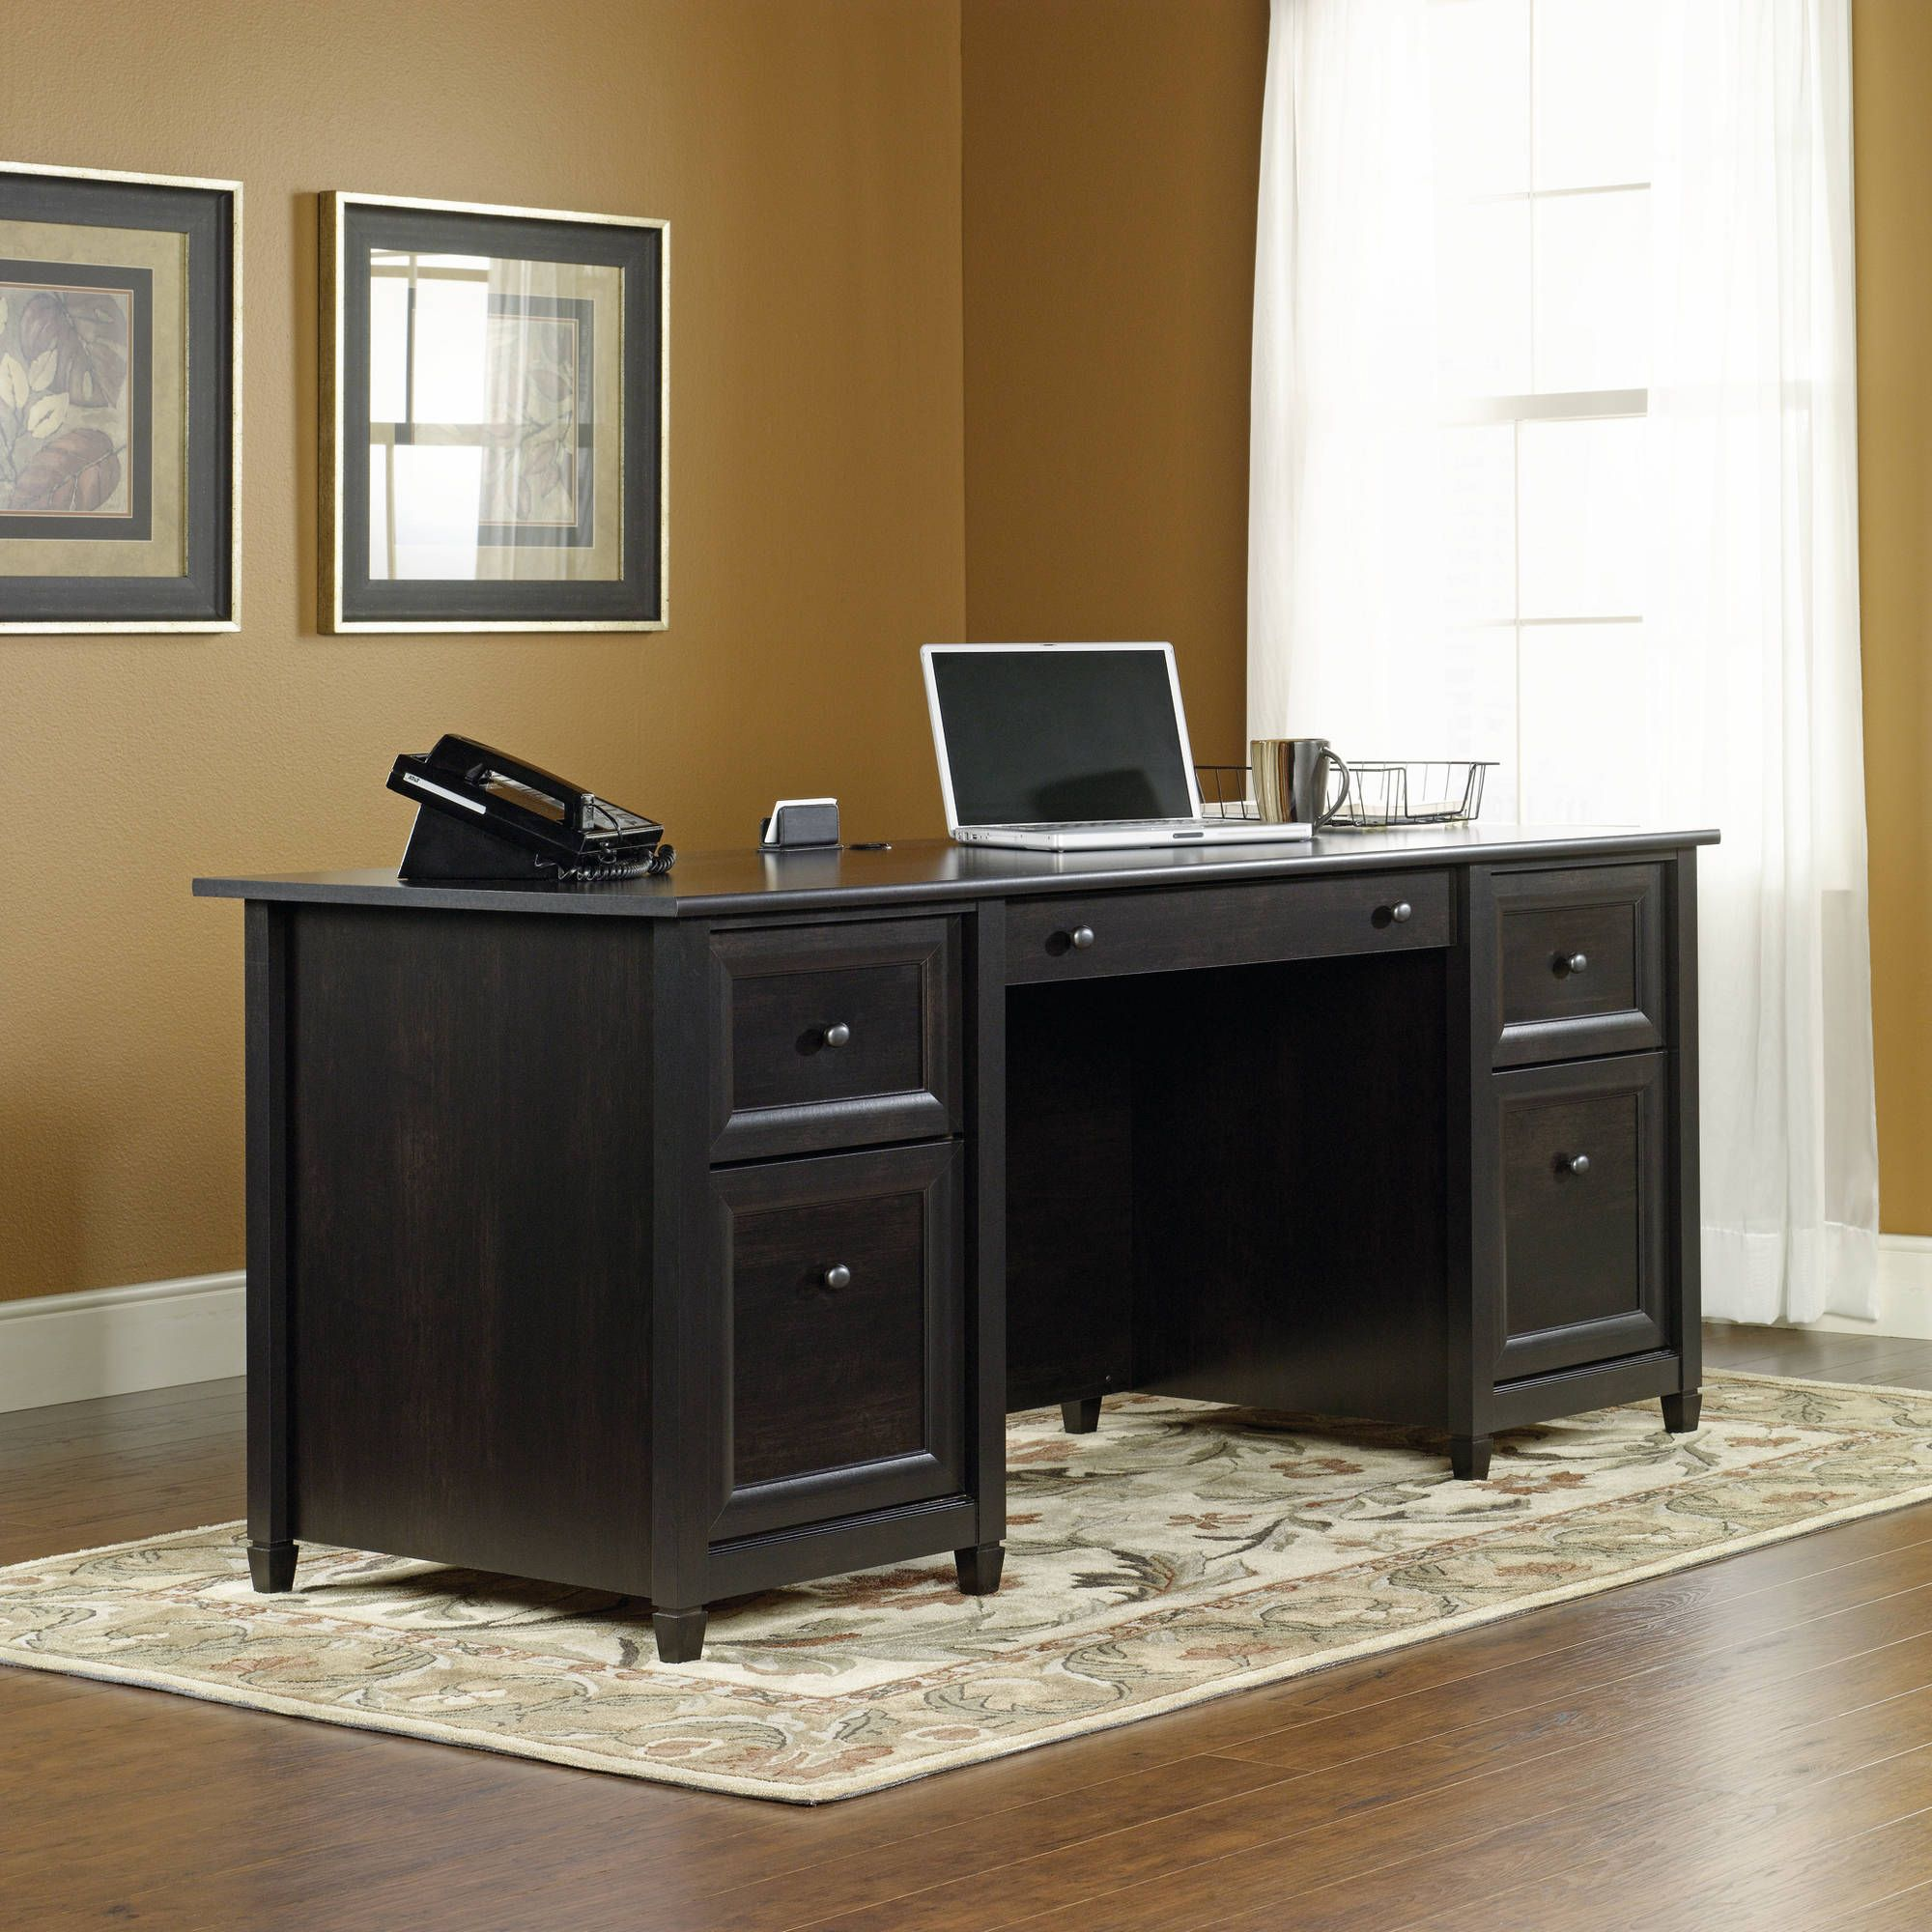 Desks for Home fice American Freight Living Room Set Check more